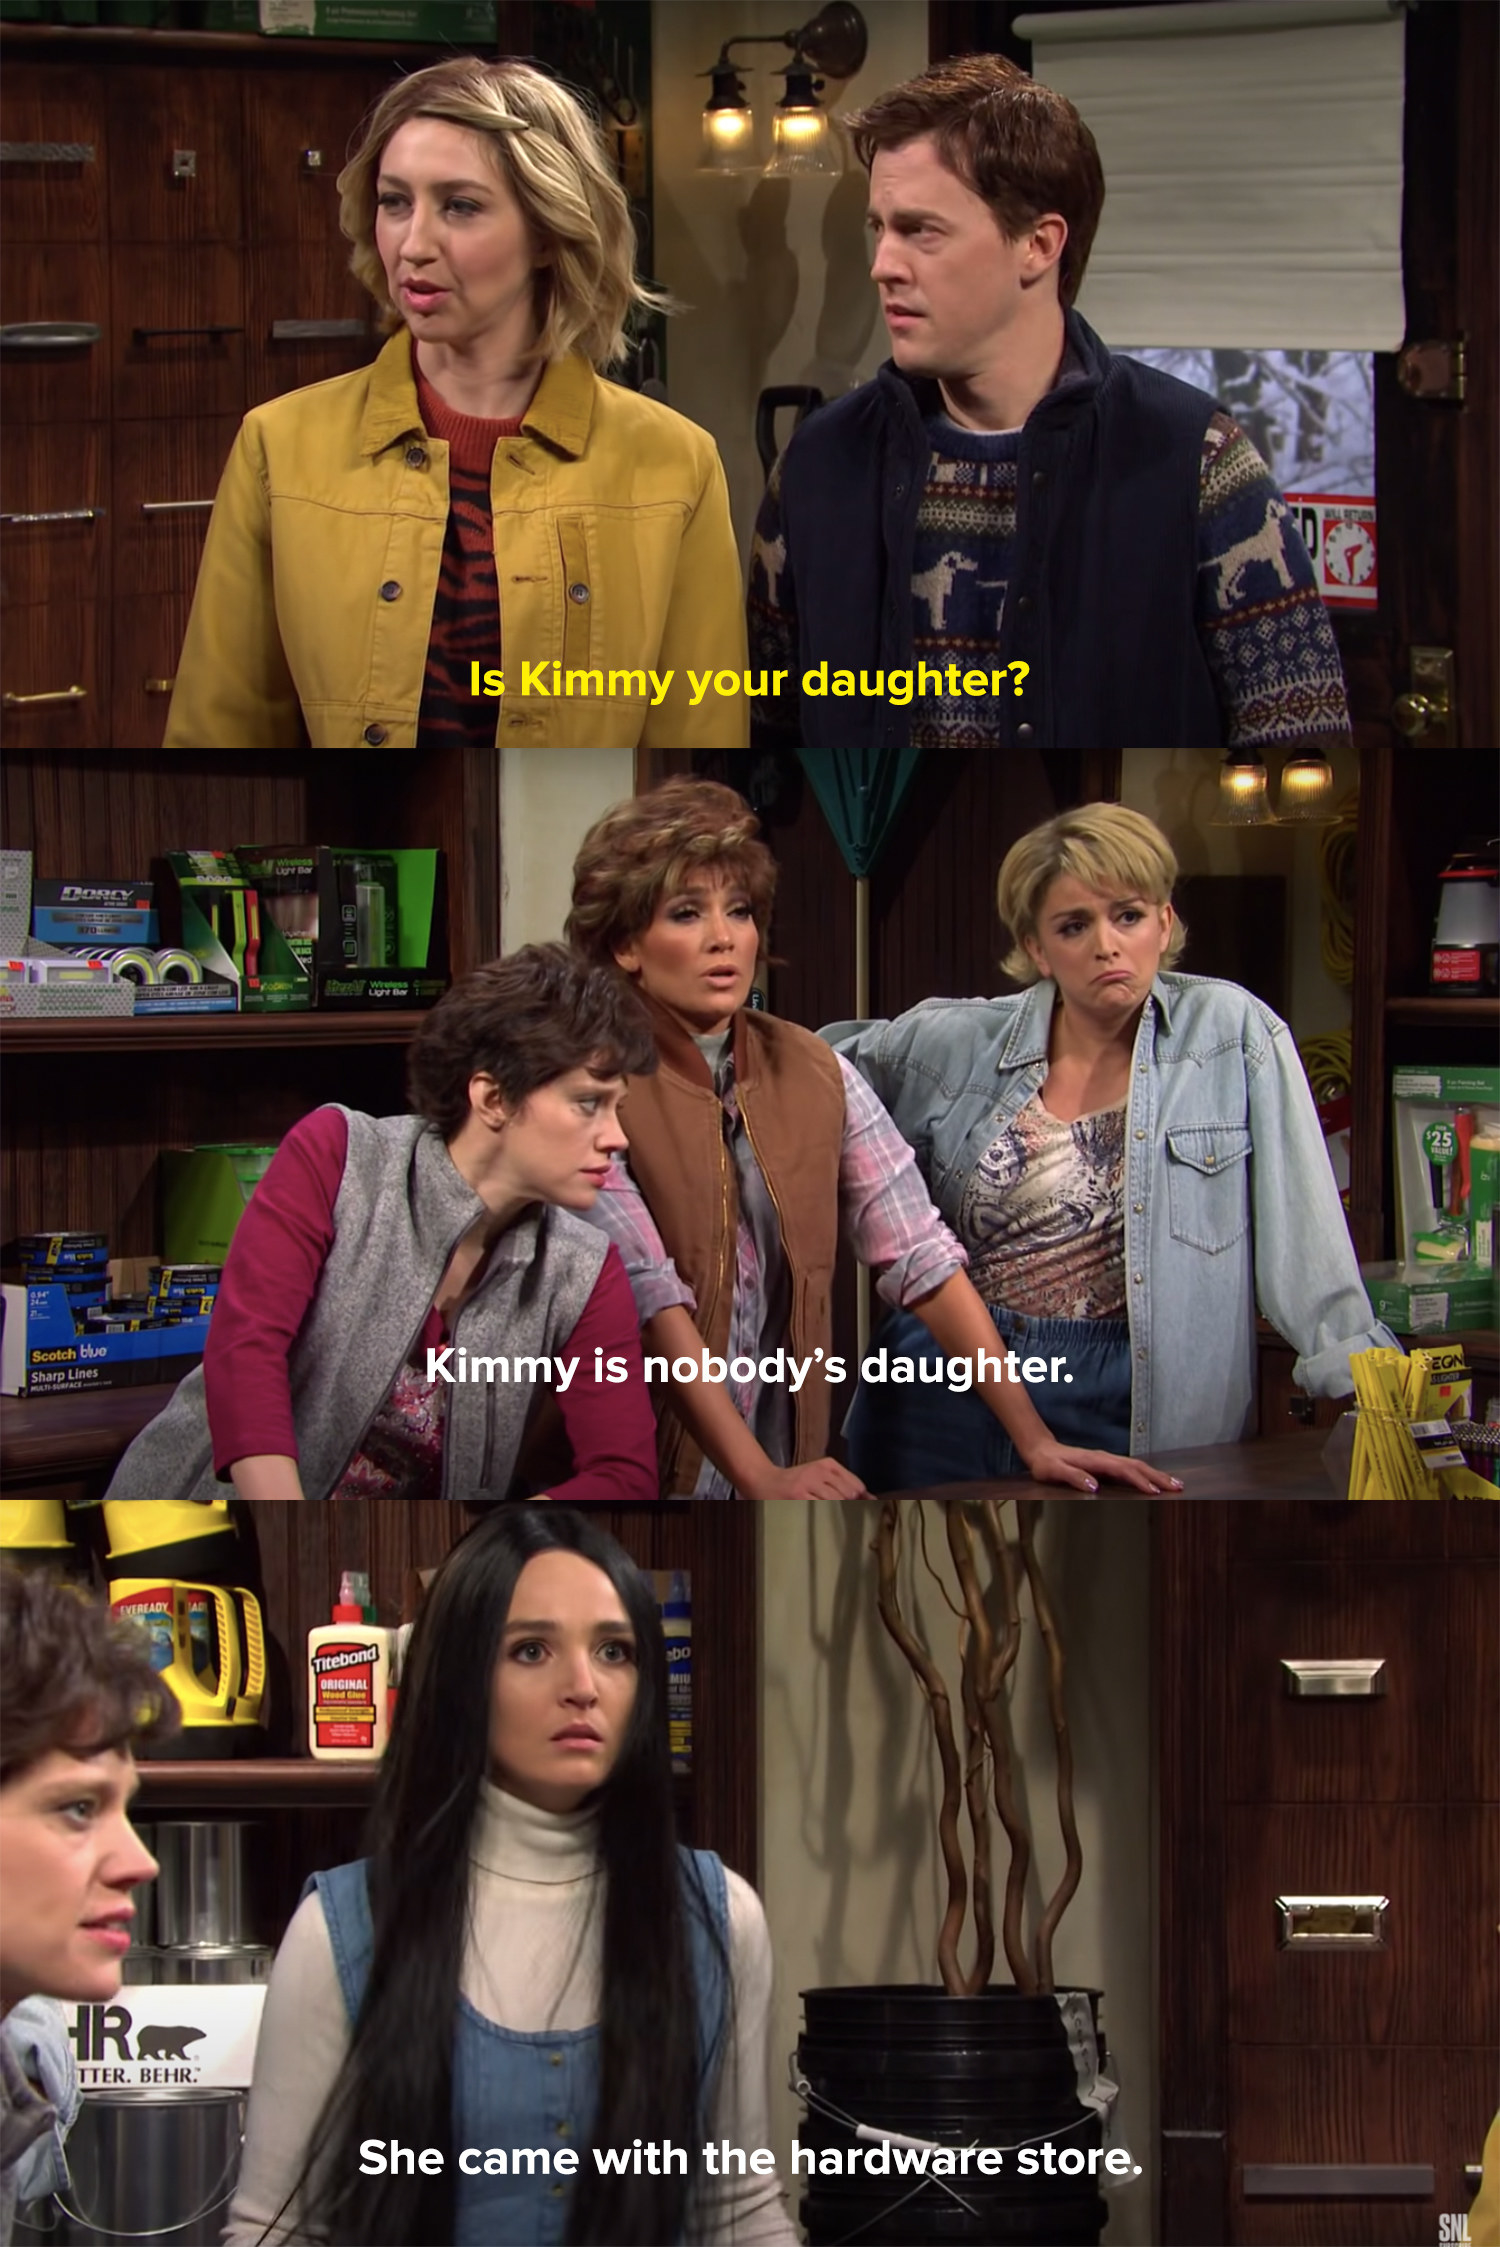 A couple learns that Kimmy is nobody's daughter because she came with the hardware store